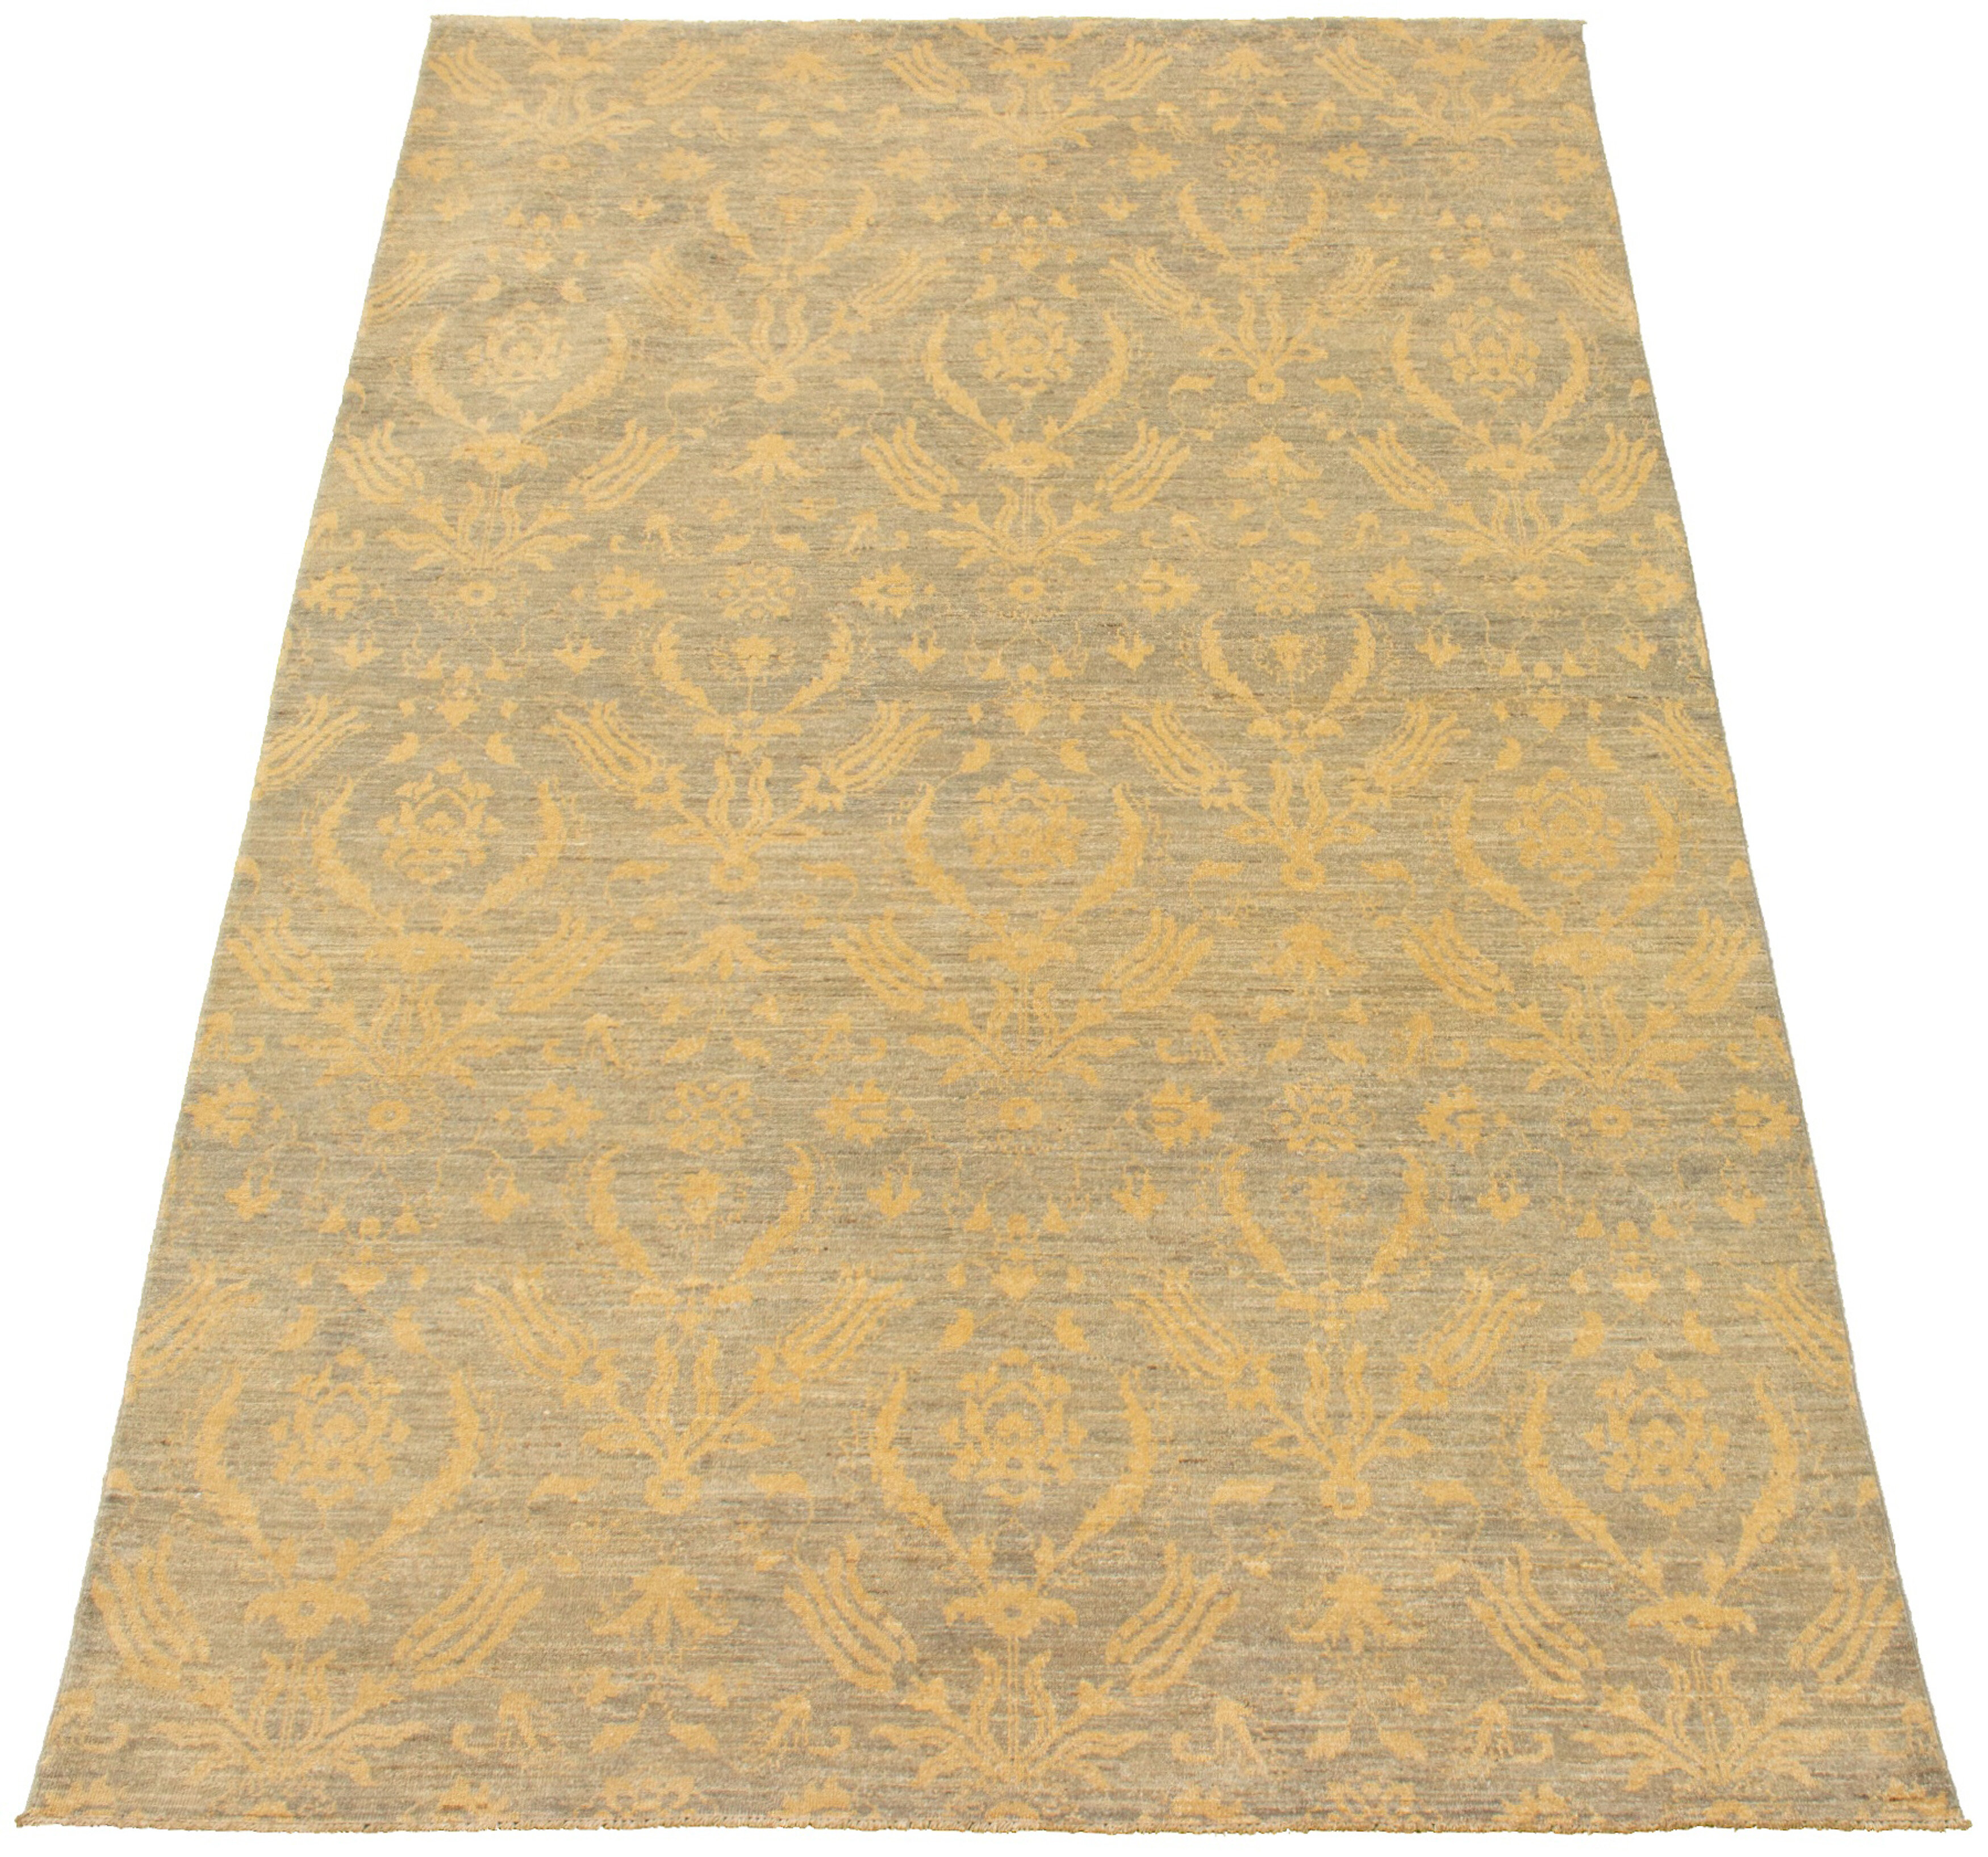 Ophelia Co One Of A Kind Goforth Hand Knotted 2010s Ushak Gray 6 X 9 4 Wool Area Rug Wayfair